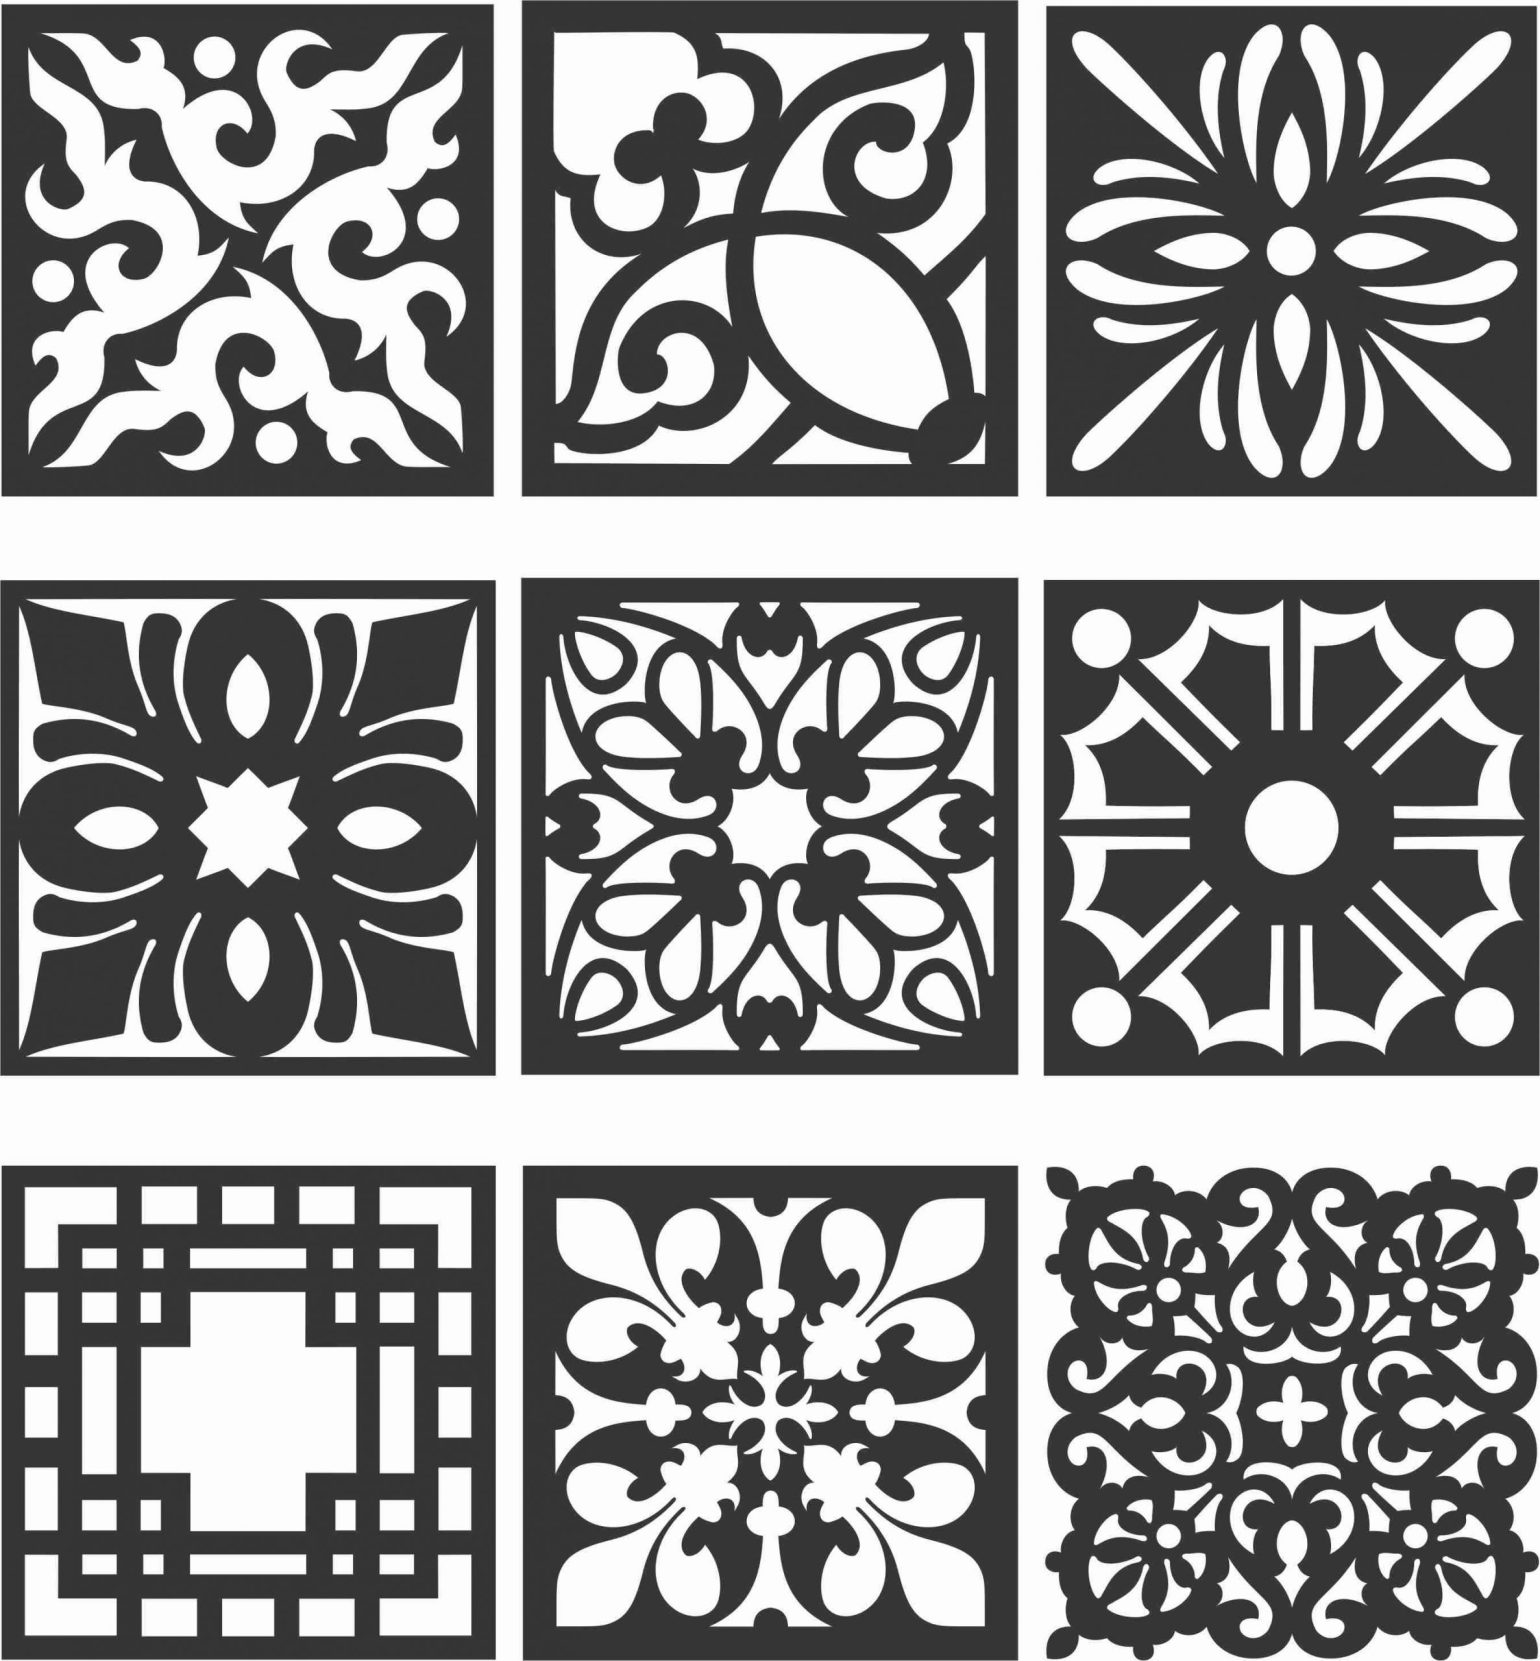 Floral Screen Patterns Design 124 Free DXF File